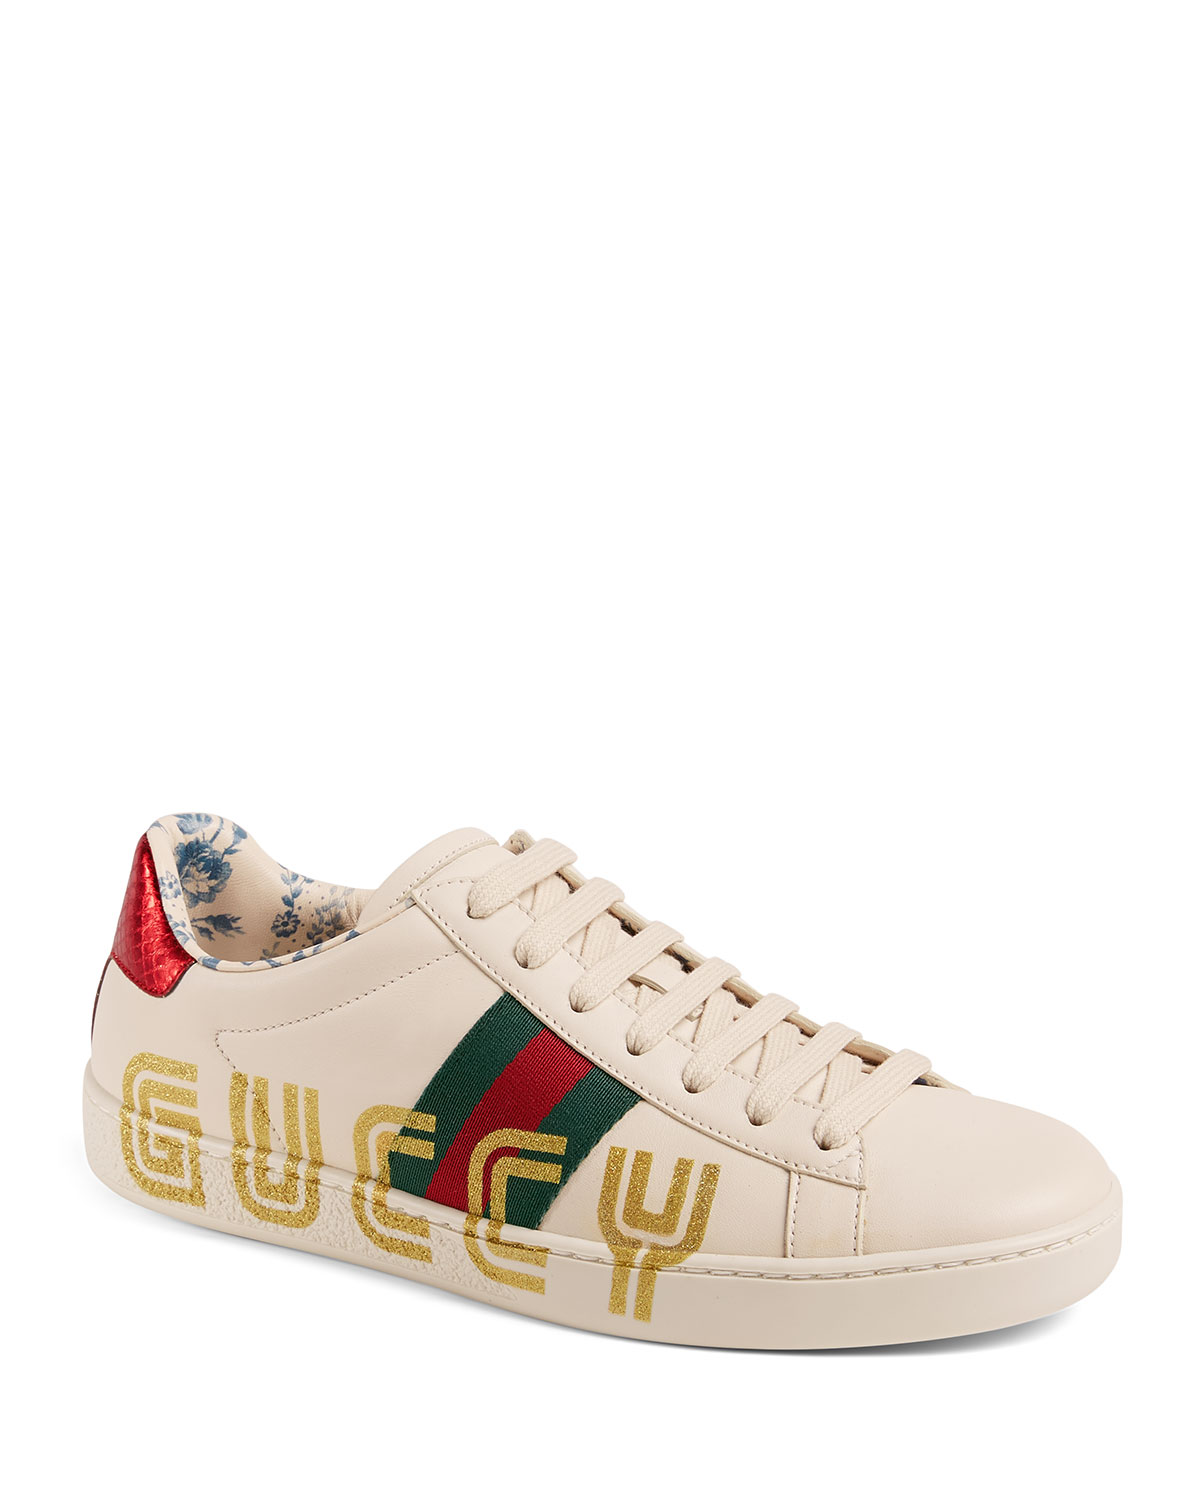 b42265b5896e Gucci New Ace Guccy Leather Sneaker   Neiman Marcus